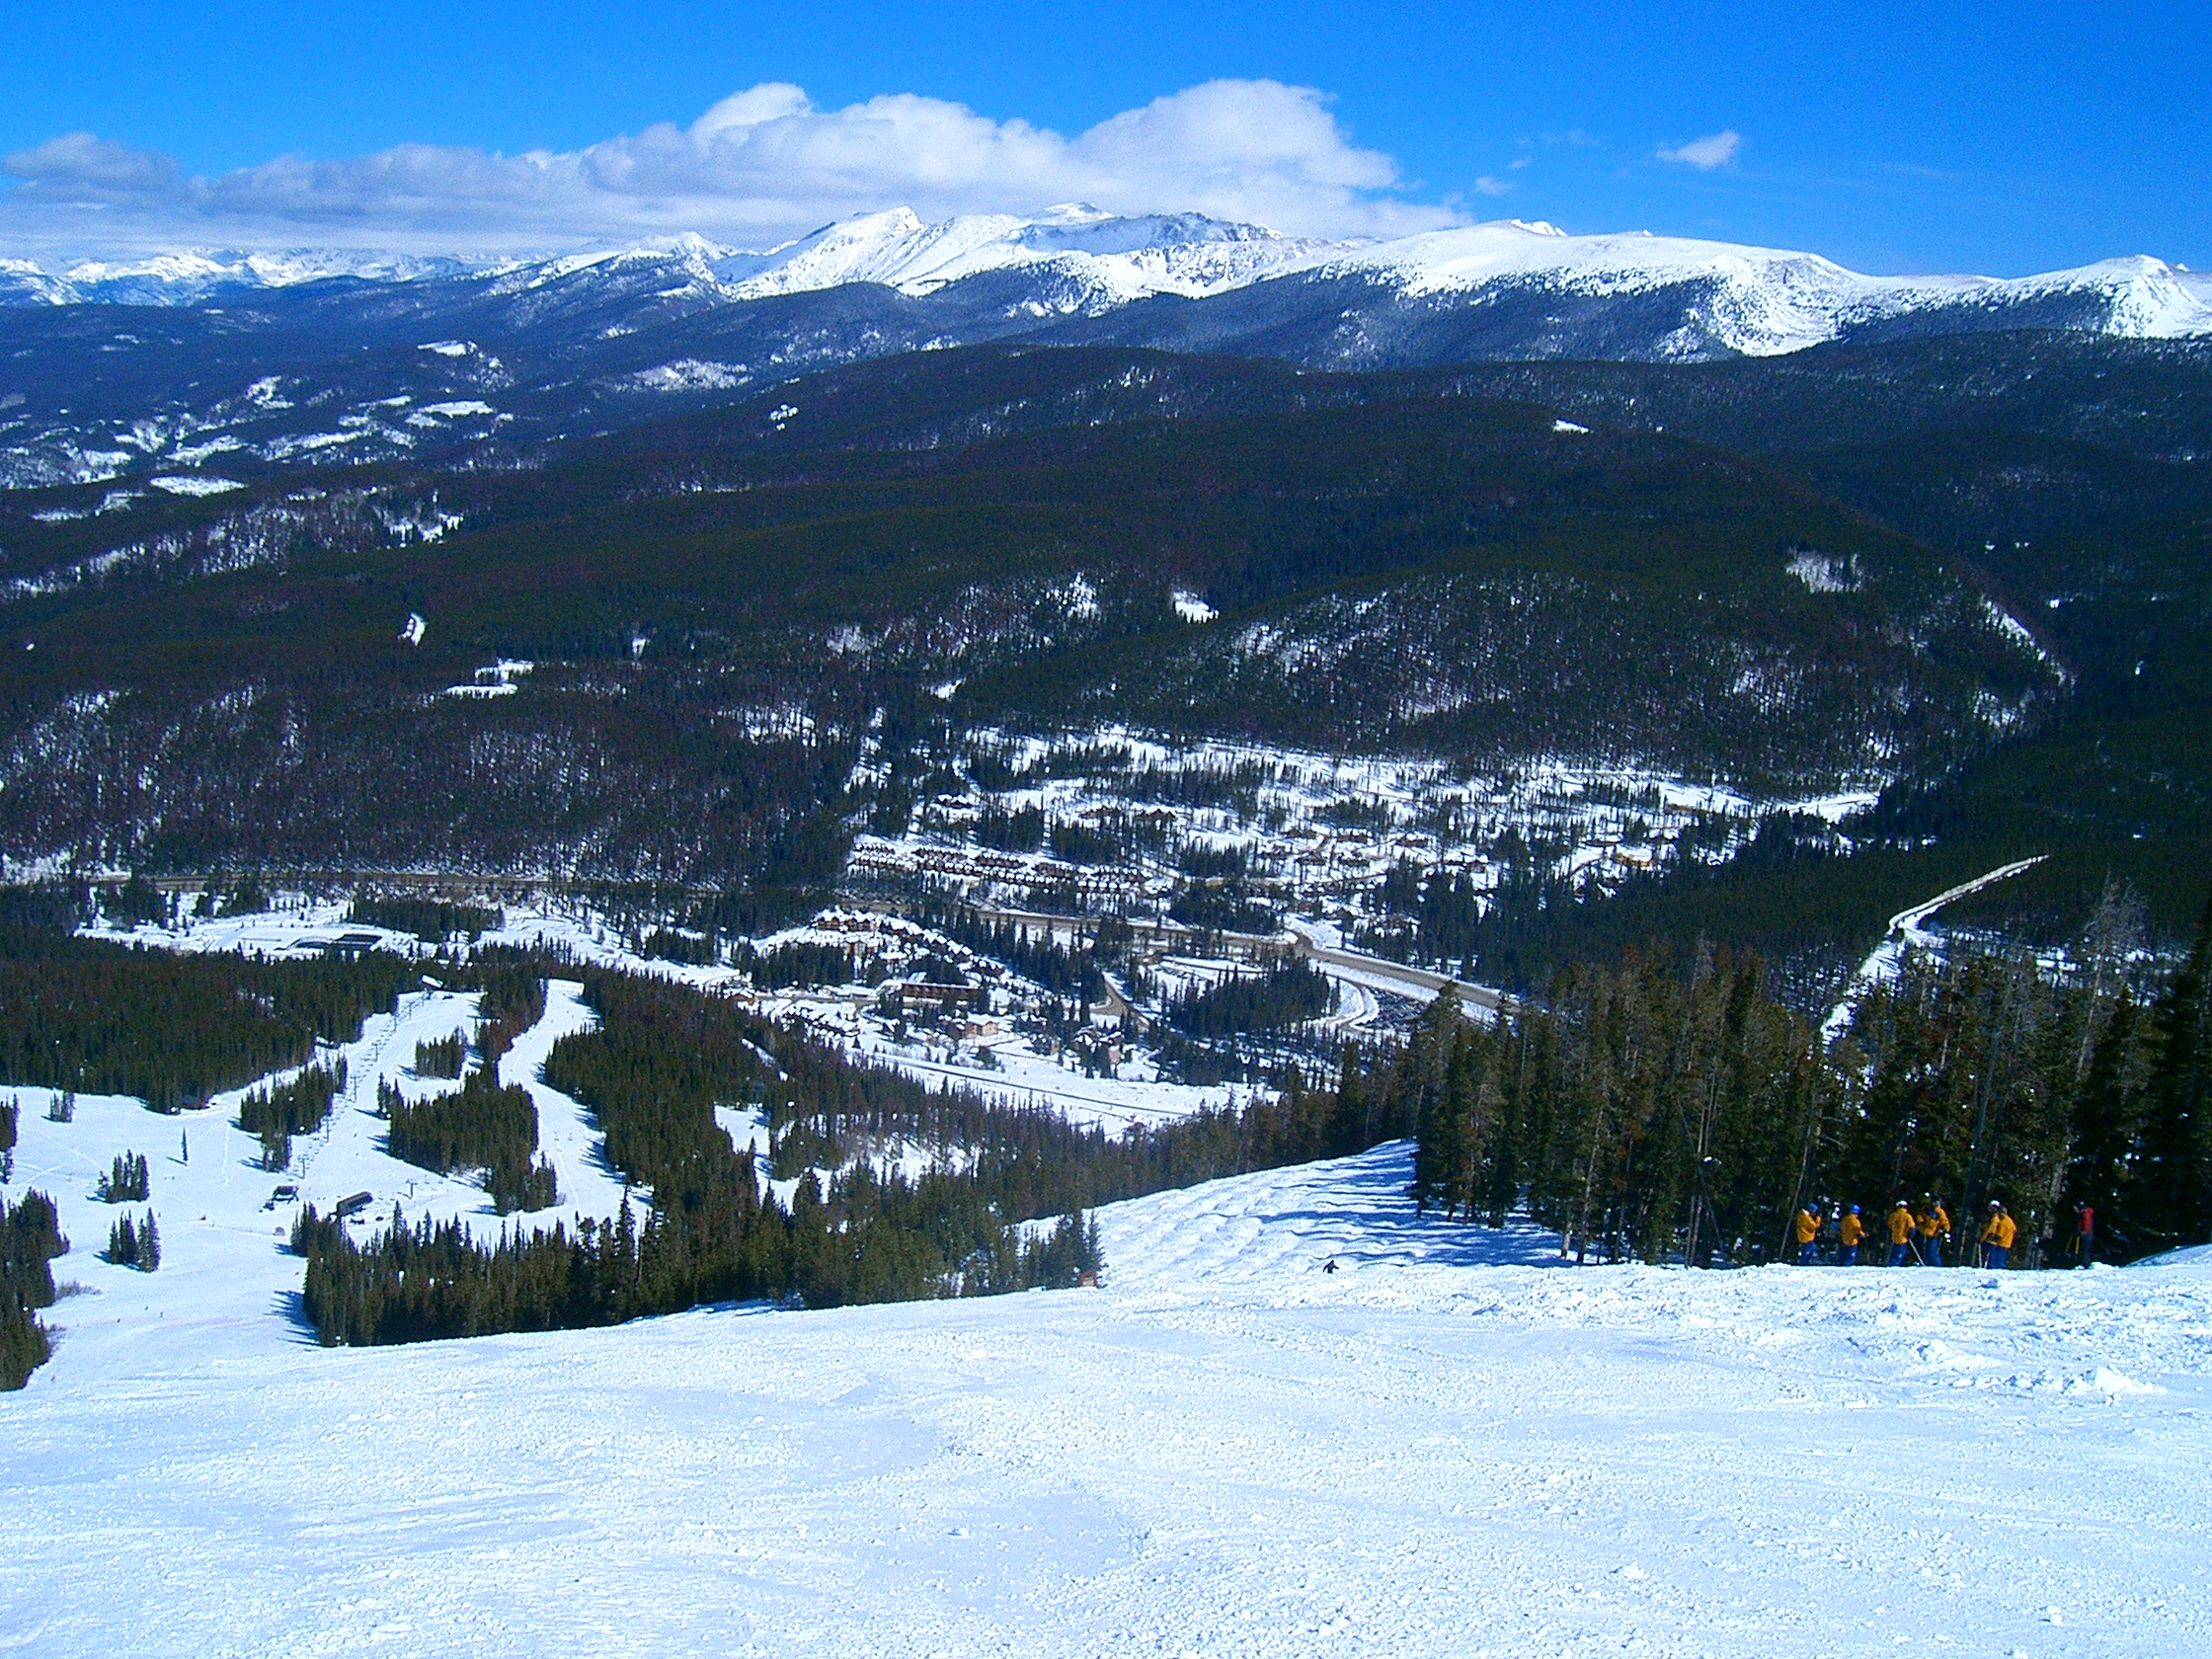 Good view of WP, Winter Park